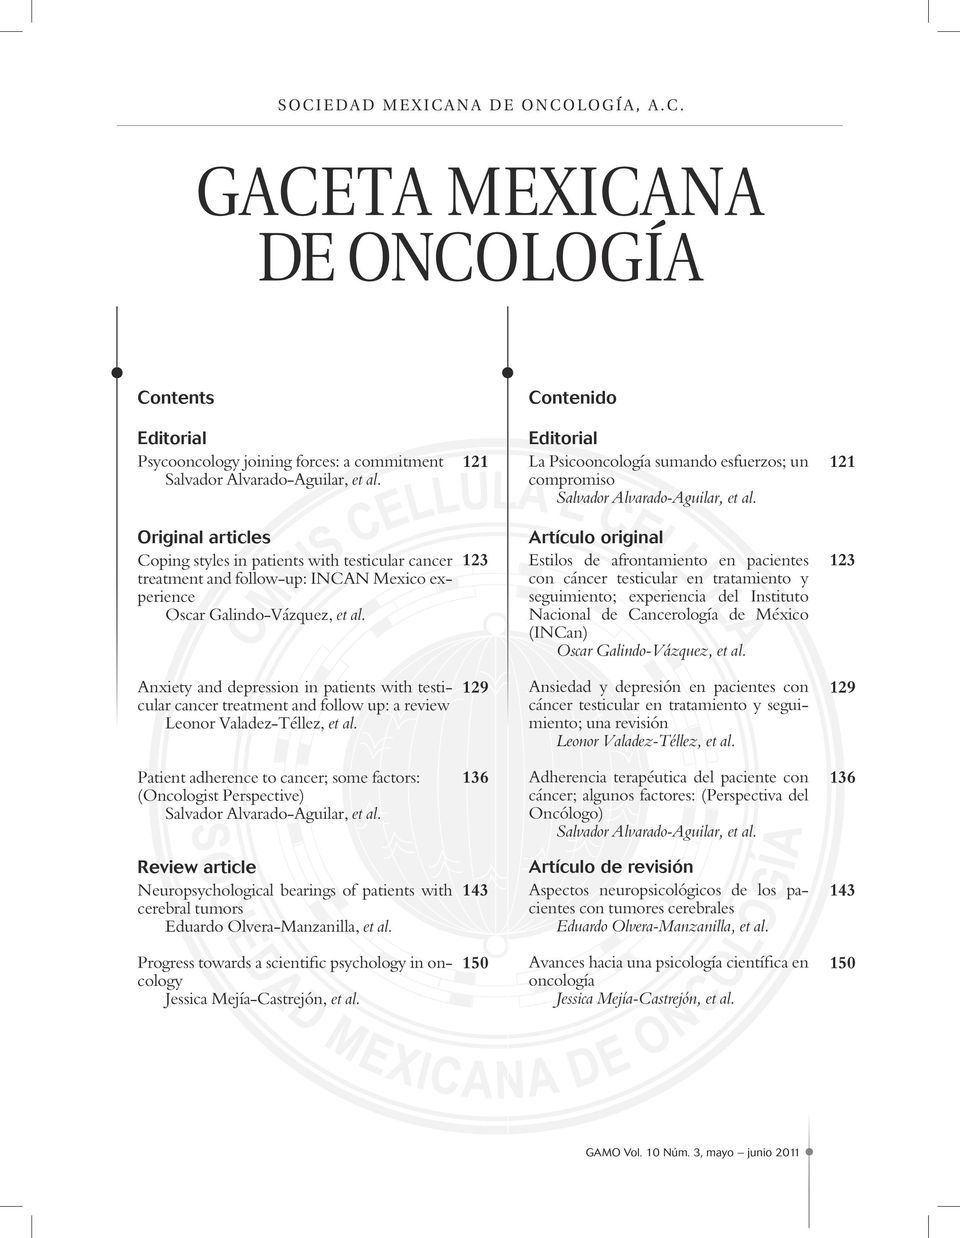 121 Original articles Coping styles in patients with testicular cancer treatment and follow-up: INCAN Mexico experience Oscar Galindo-Vázquez, et al.